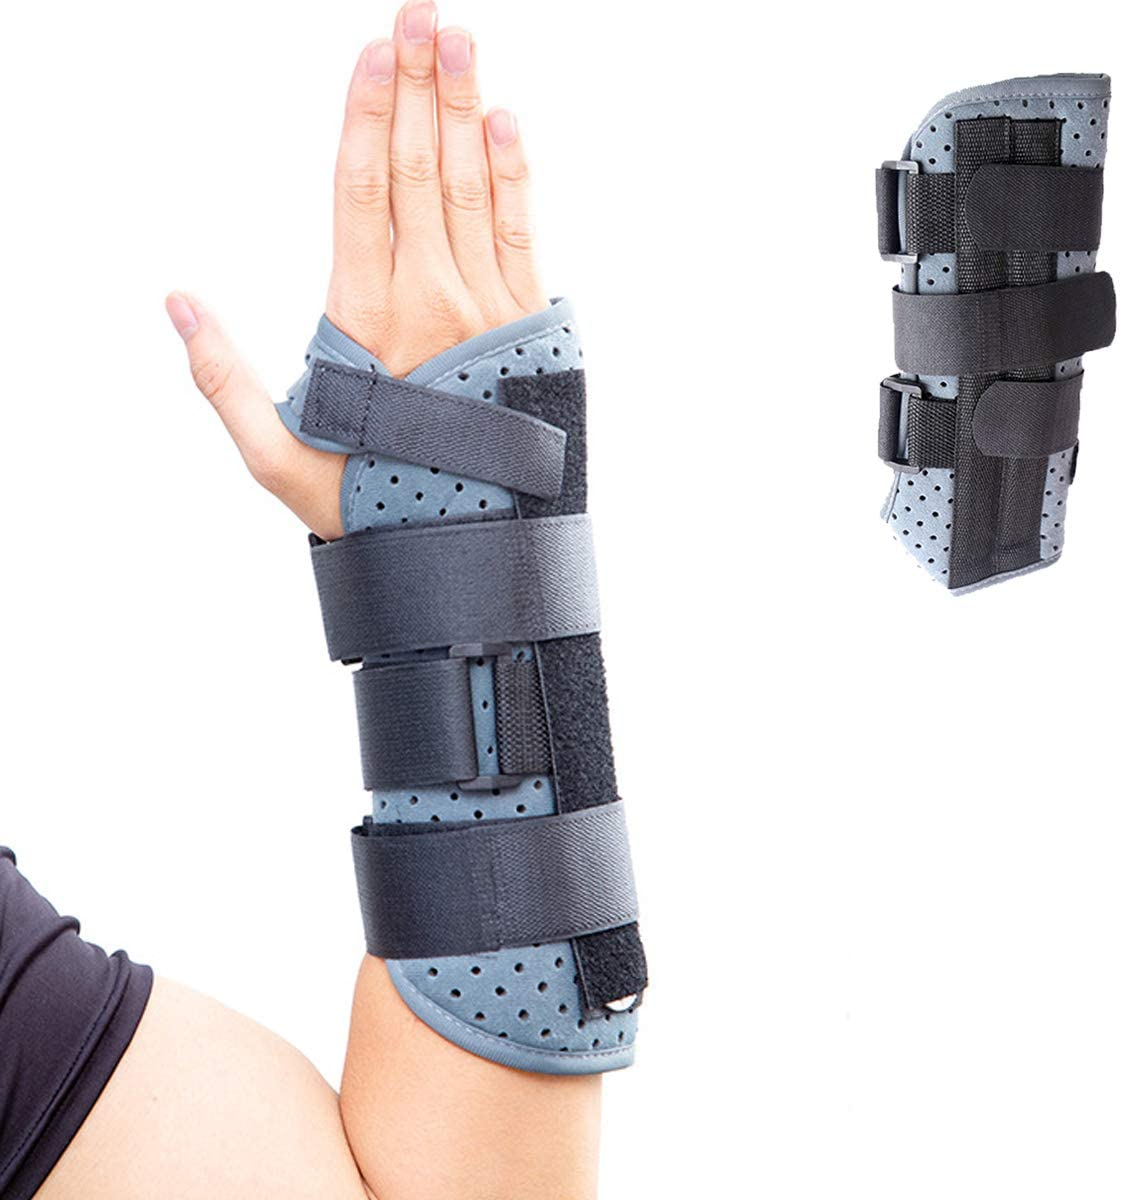 Enhanced Wrist Brace   Right Hand, for Men and Women, Strengthen Support for Wrist, Fixation for Wrist, Sprain, Fracture, Fasciitis, Arthritis, Stable Fracture (L)